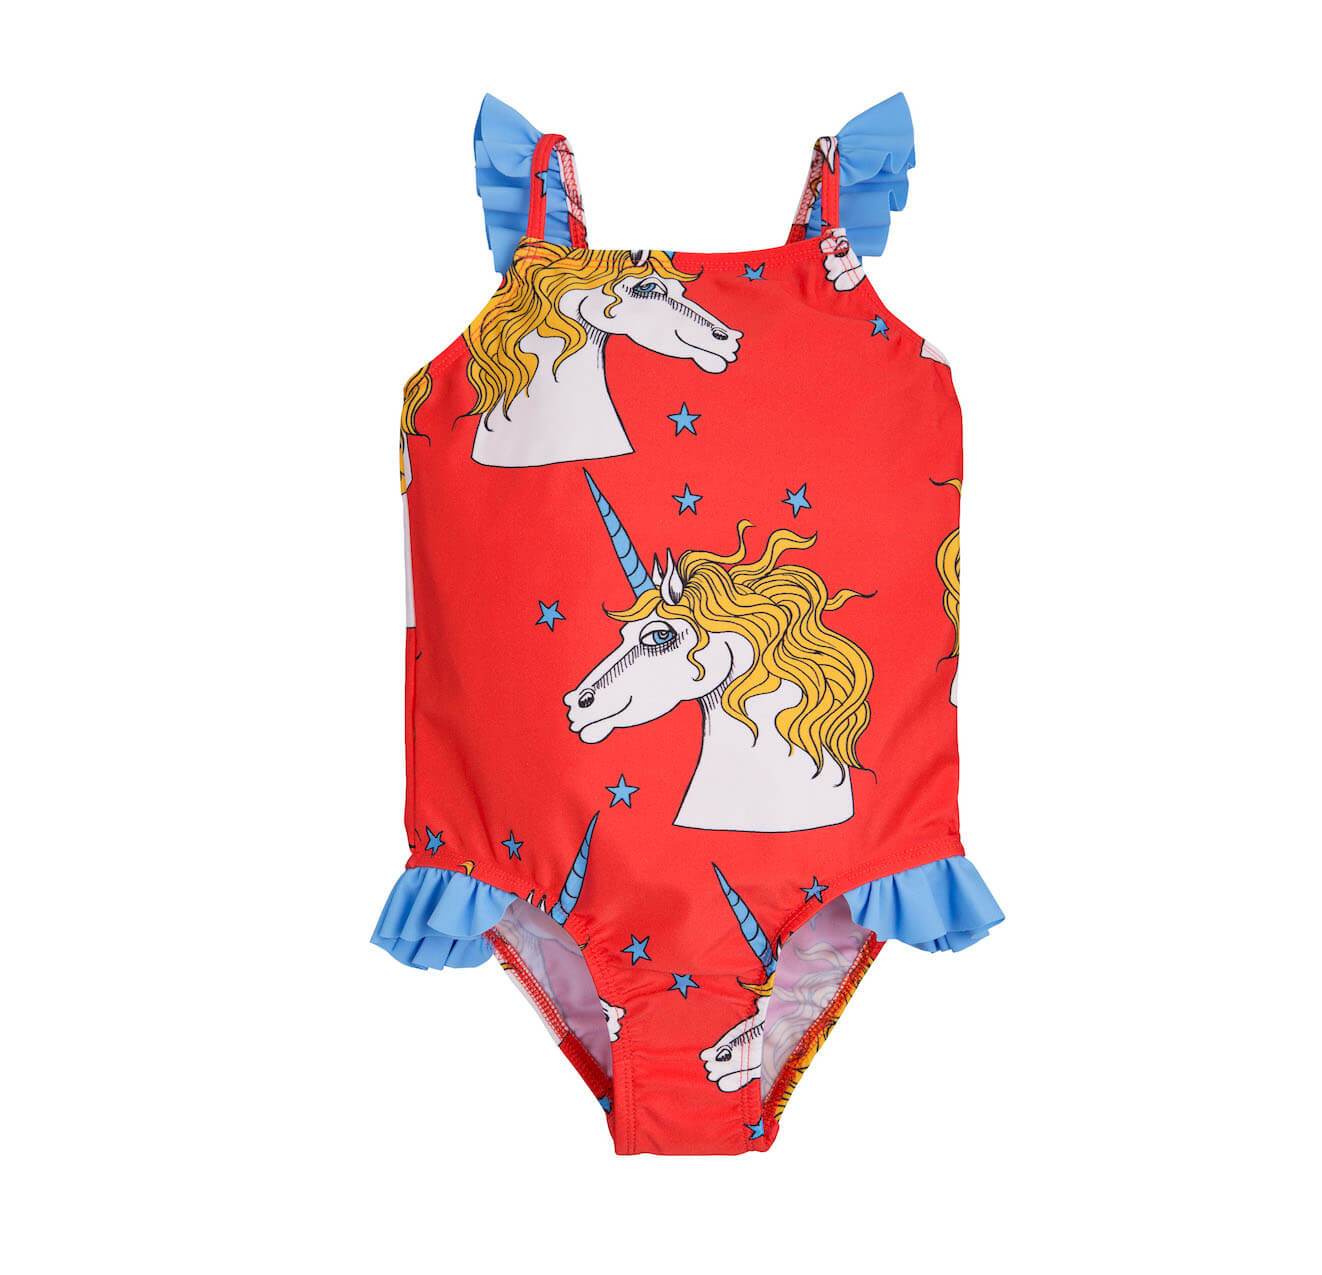 Pepe&Nika PepeandNika Mini Rodini Little Apparel Kids Fashion Kindermode Badeanzug Mädchen girls Unicorn Swimsuit red Einhorn print casual summery sommerlich eco friendly recycled rot Unicorn Star Wing Swimsuit Red Sweden Schweden